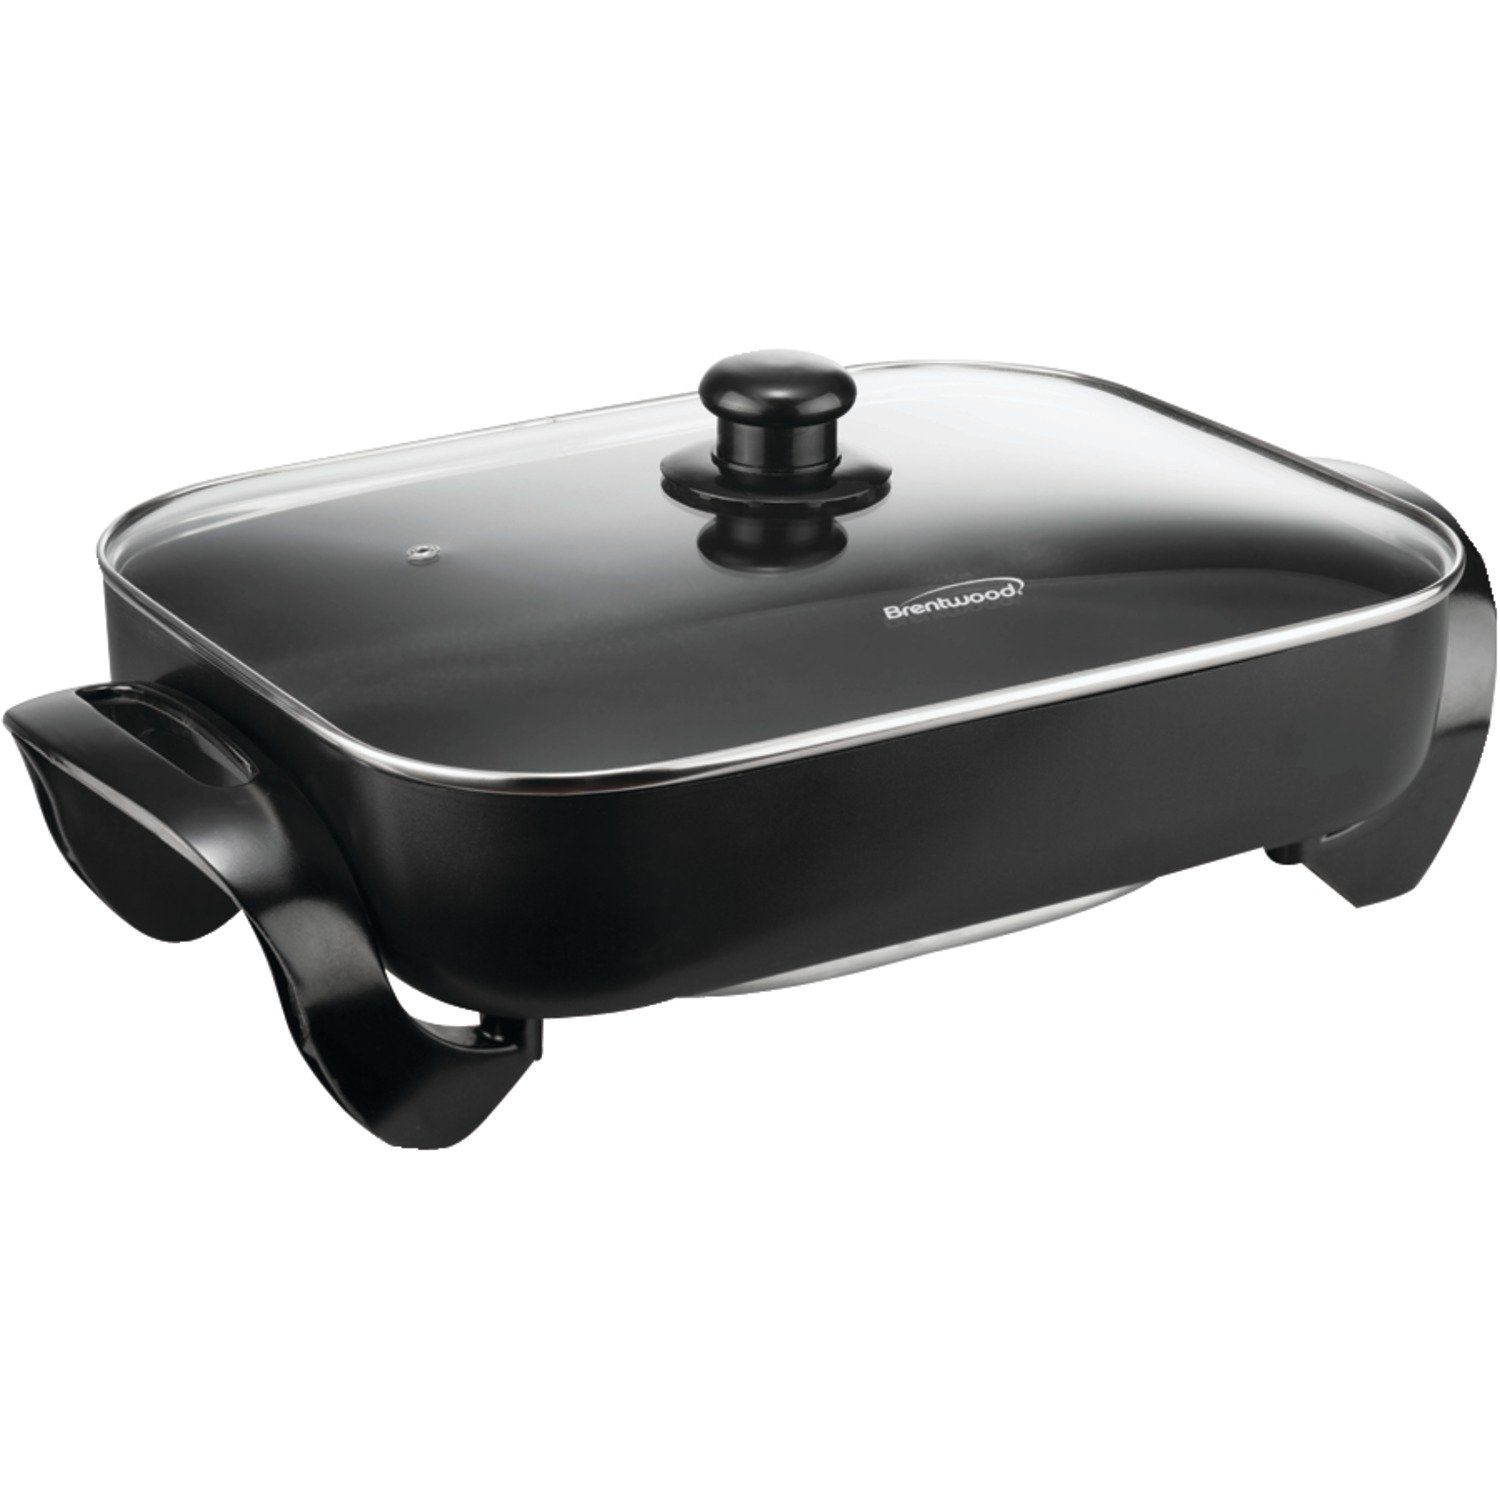 BRENTWOOD BTWSK75, Electric Skillet with Glass Lid (1,400W/16-Inch) SK-75